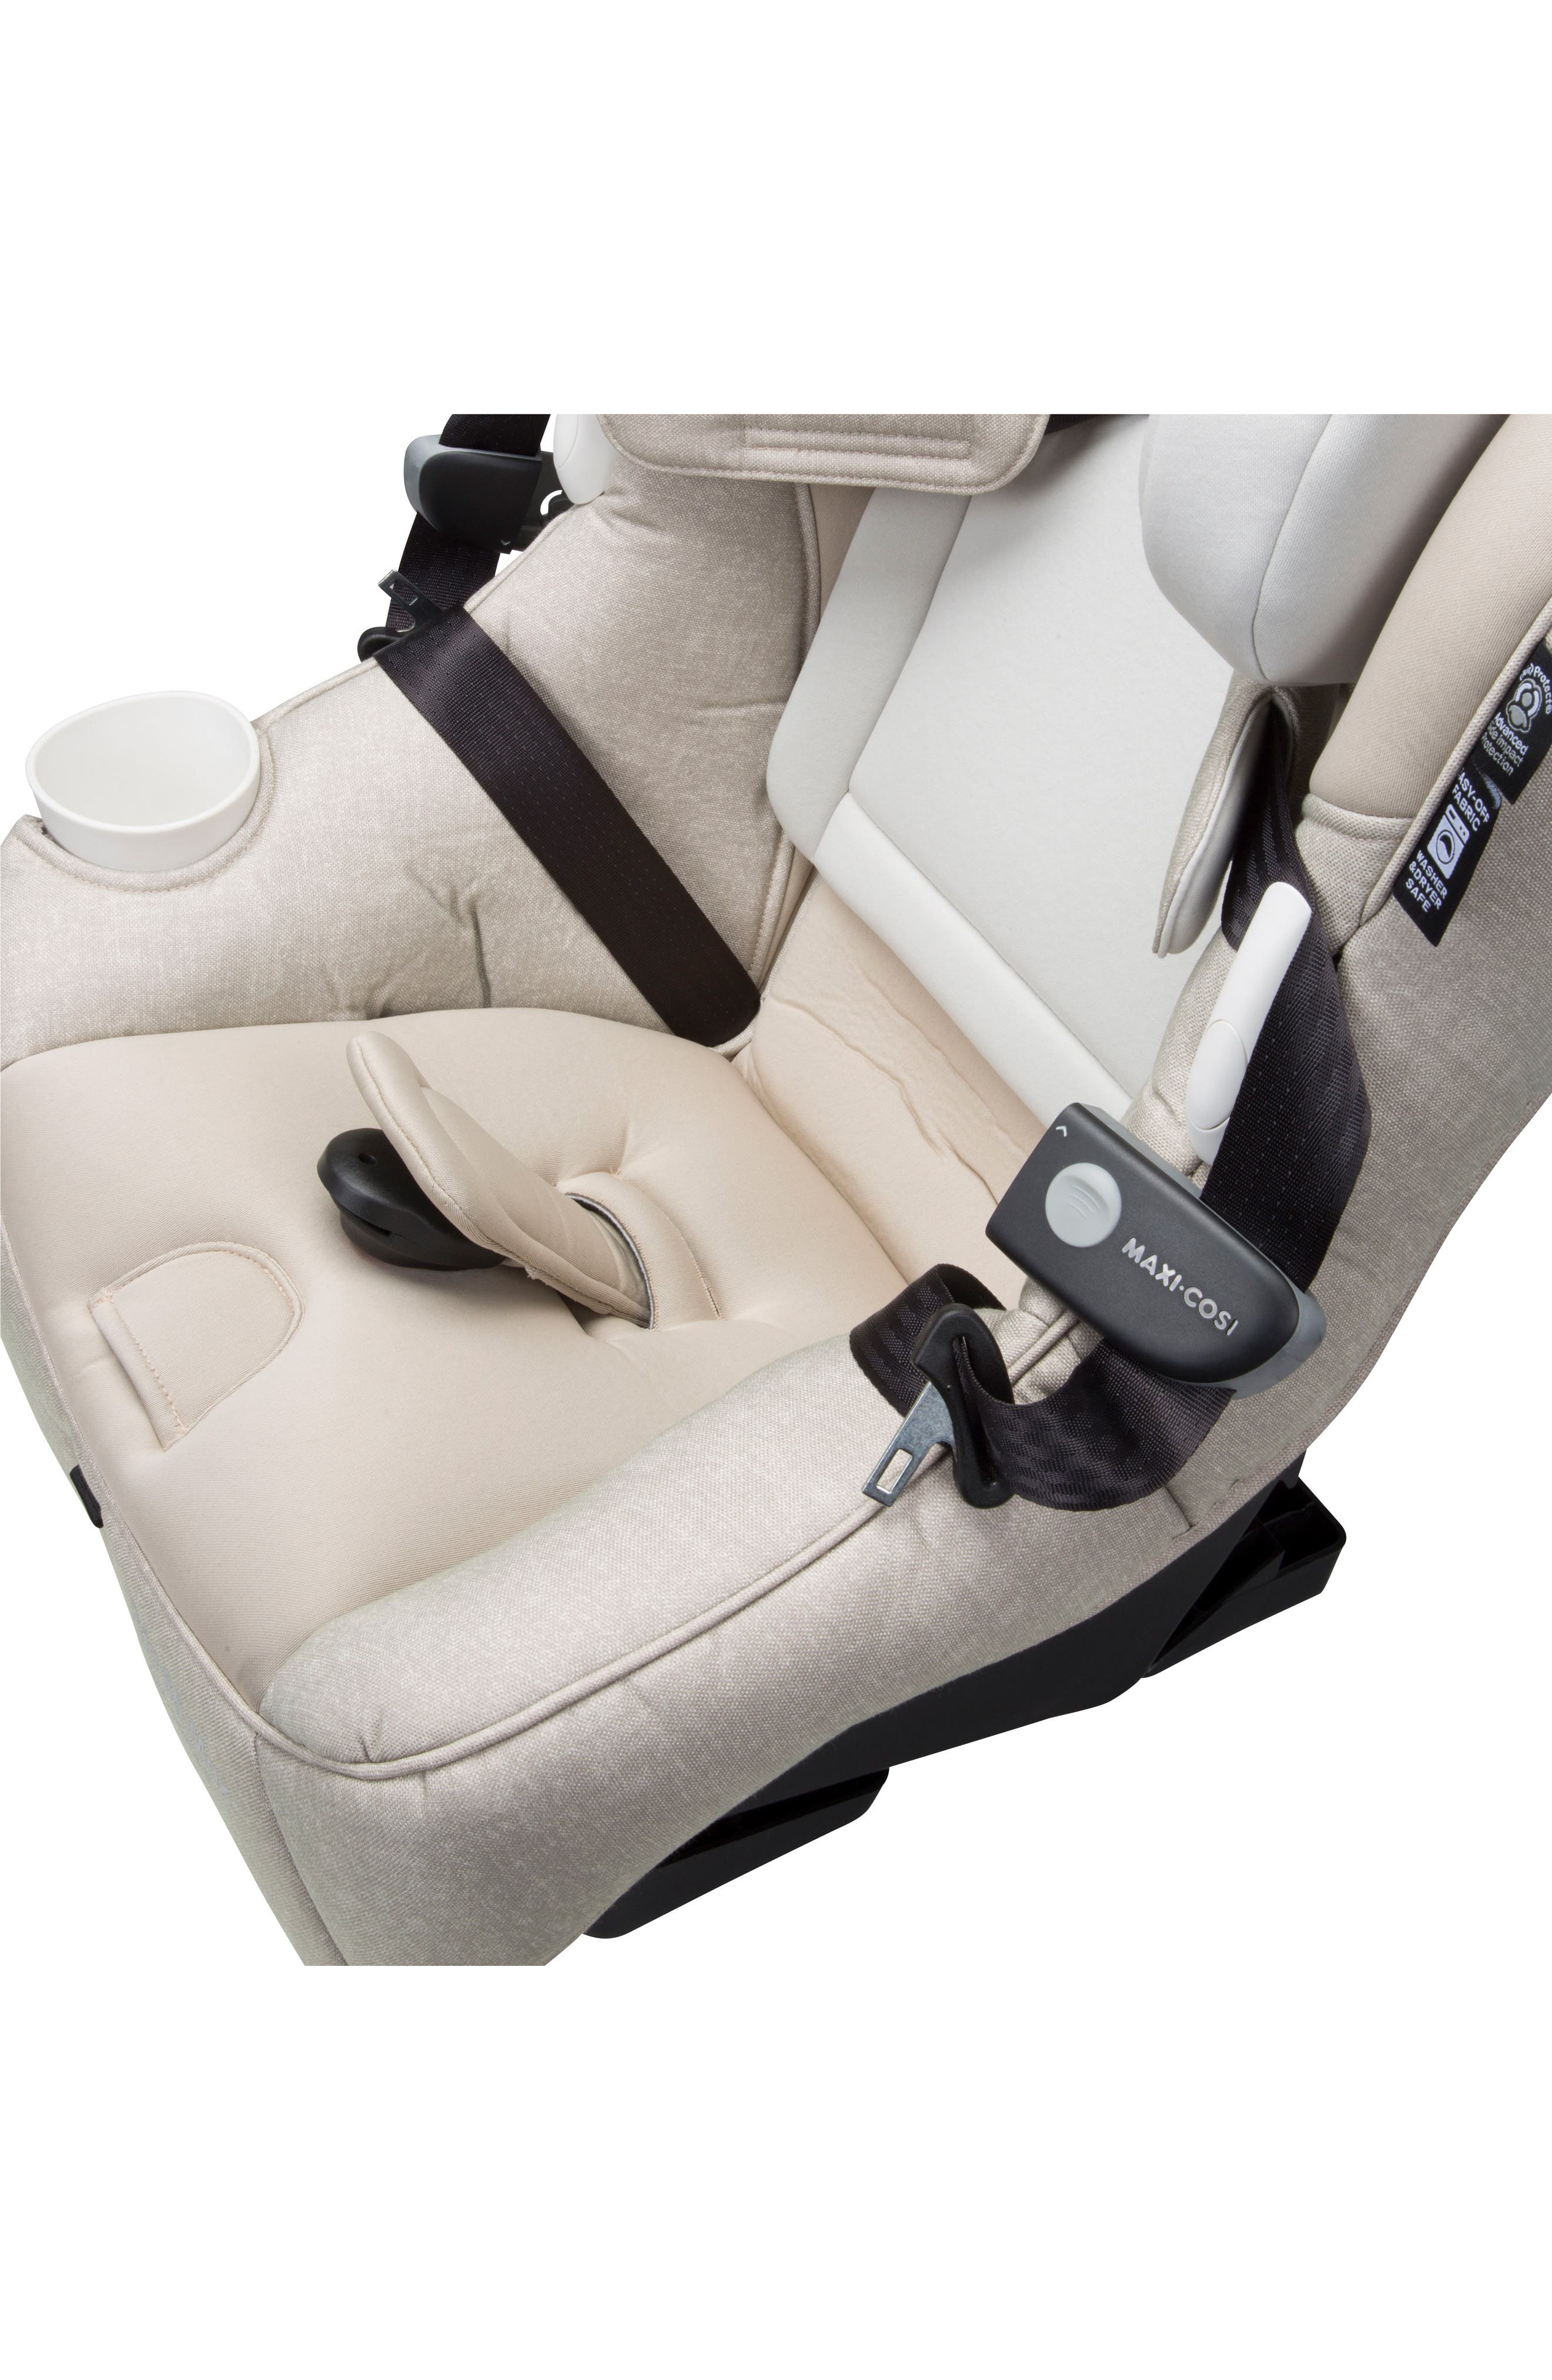 Pria<sup>™</sup> 85 Max Nomad Collection Convertible Car Seat,                             Alternate thumbnail 9, color,                             Nomad Sand